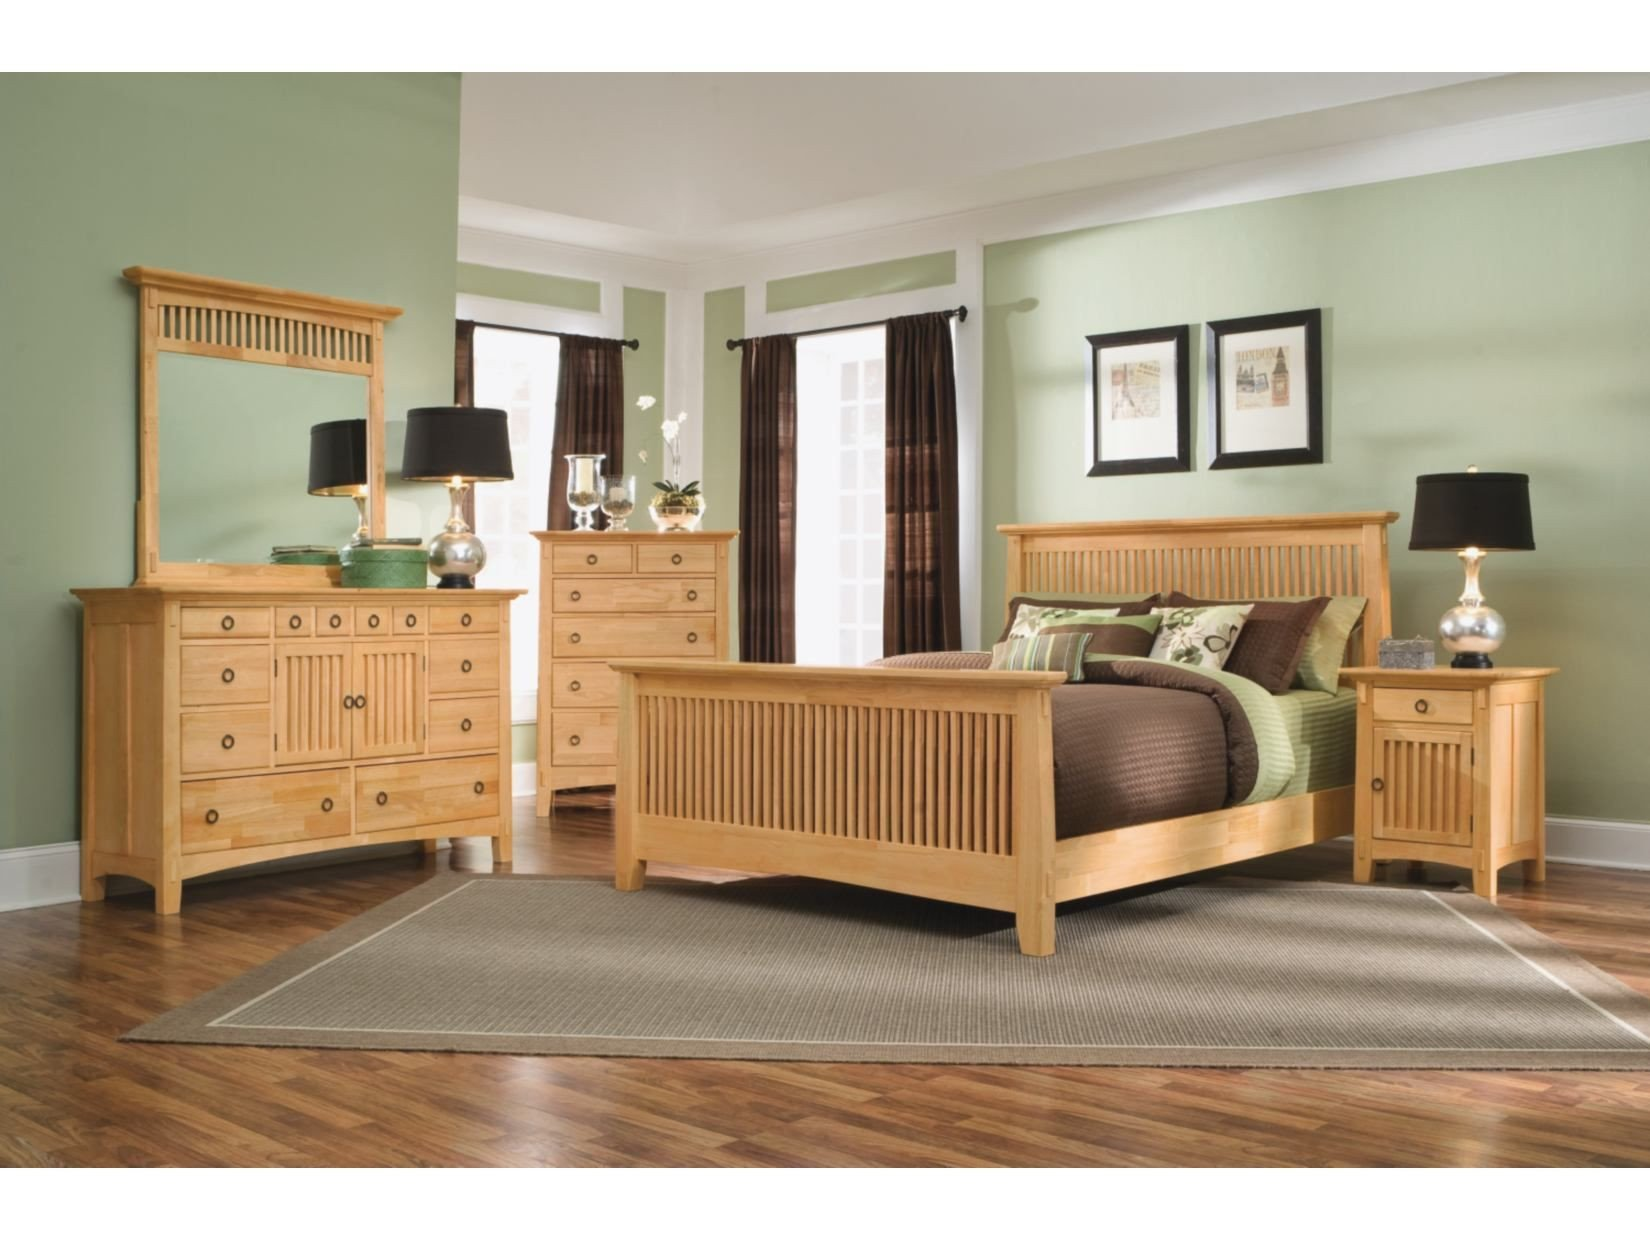 Light Wood Bedroom Furniture Beautiful Arts & Crafts 5 Pc Bedroom Package American Signature